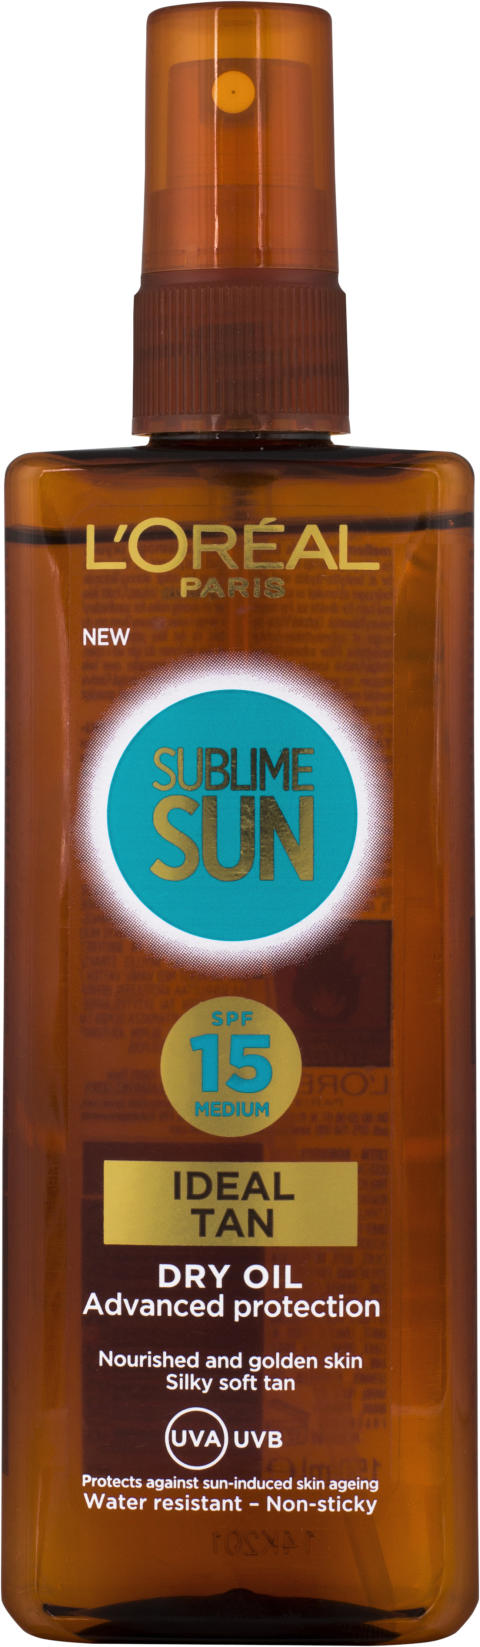 L'Oreal Paris Sublime Sun